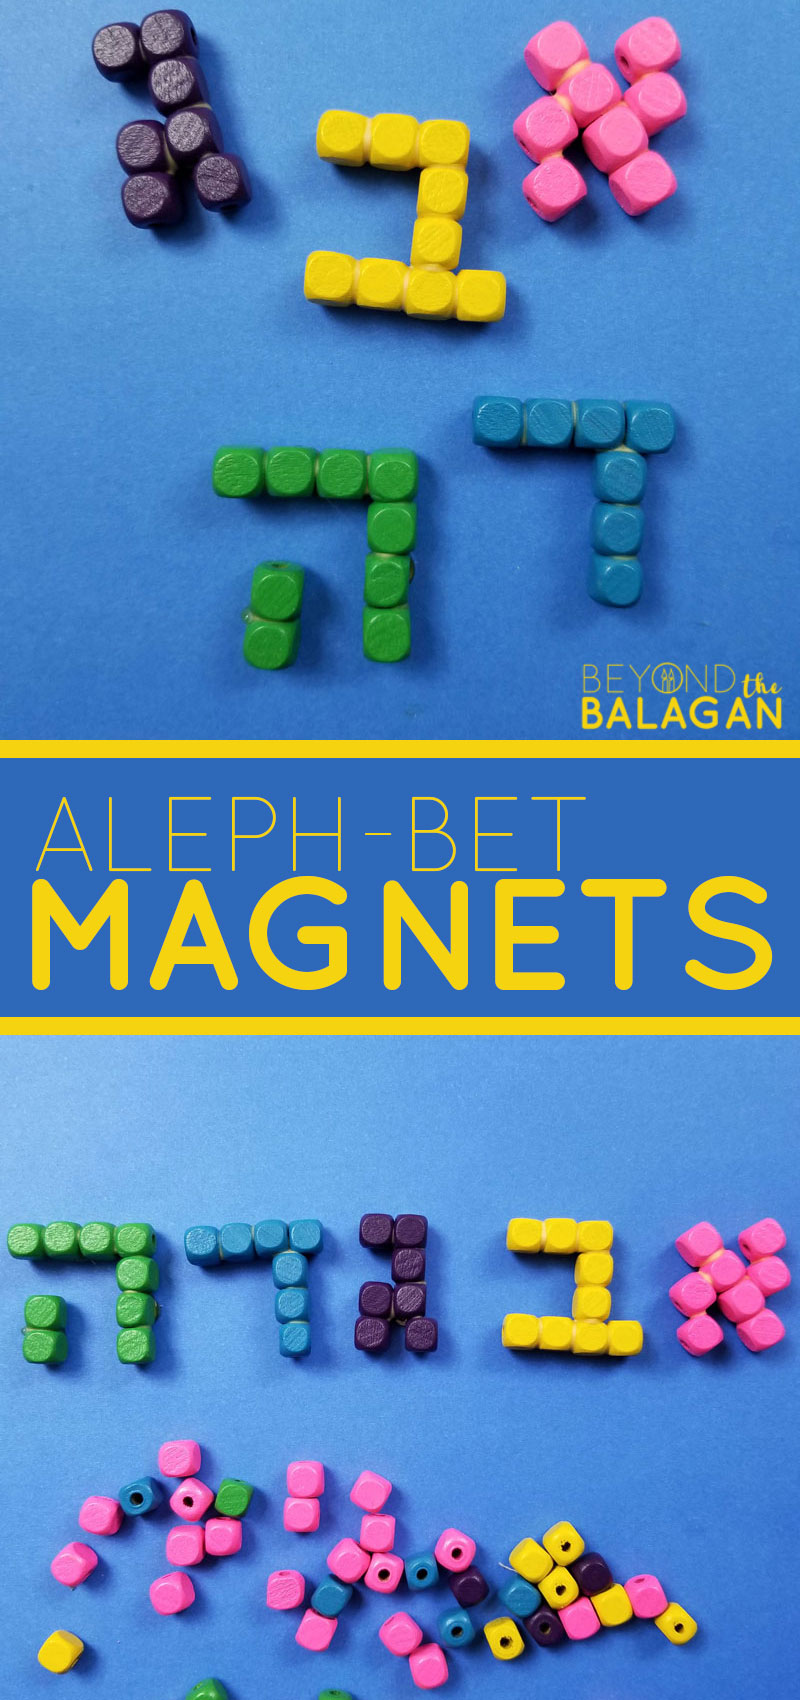 Click to learn how to make your own aleph bet magnets featuring the Hebrew alphabet! You'll love this easy Jewish kids' craft! #hebrew #alephbet #jewish